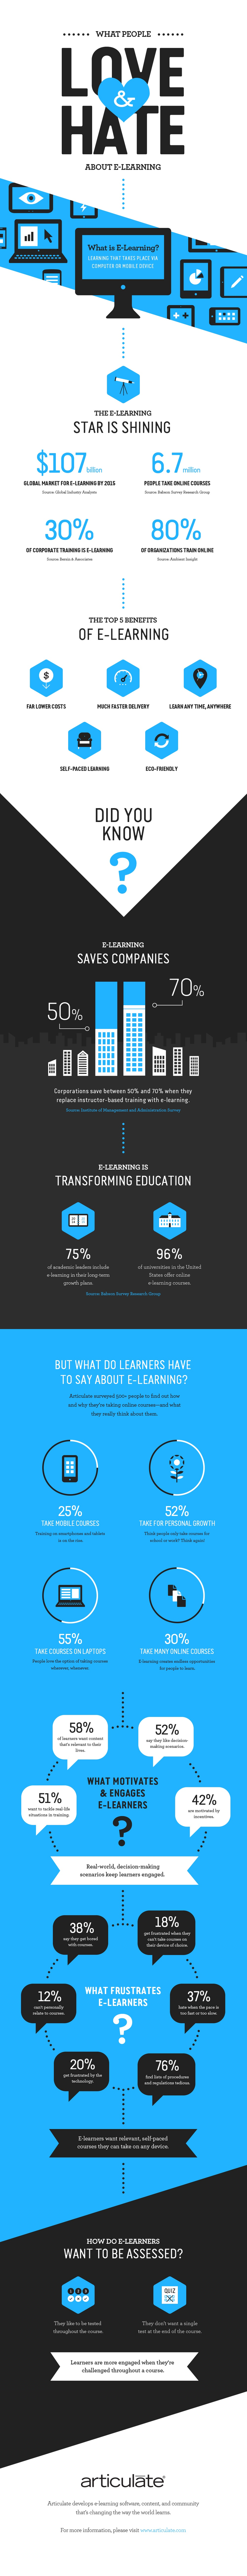 """Articulate-What-People-Love-Hate-about-e-Learning""""-infographic"""